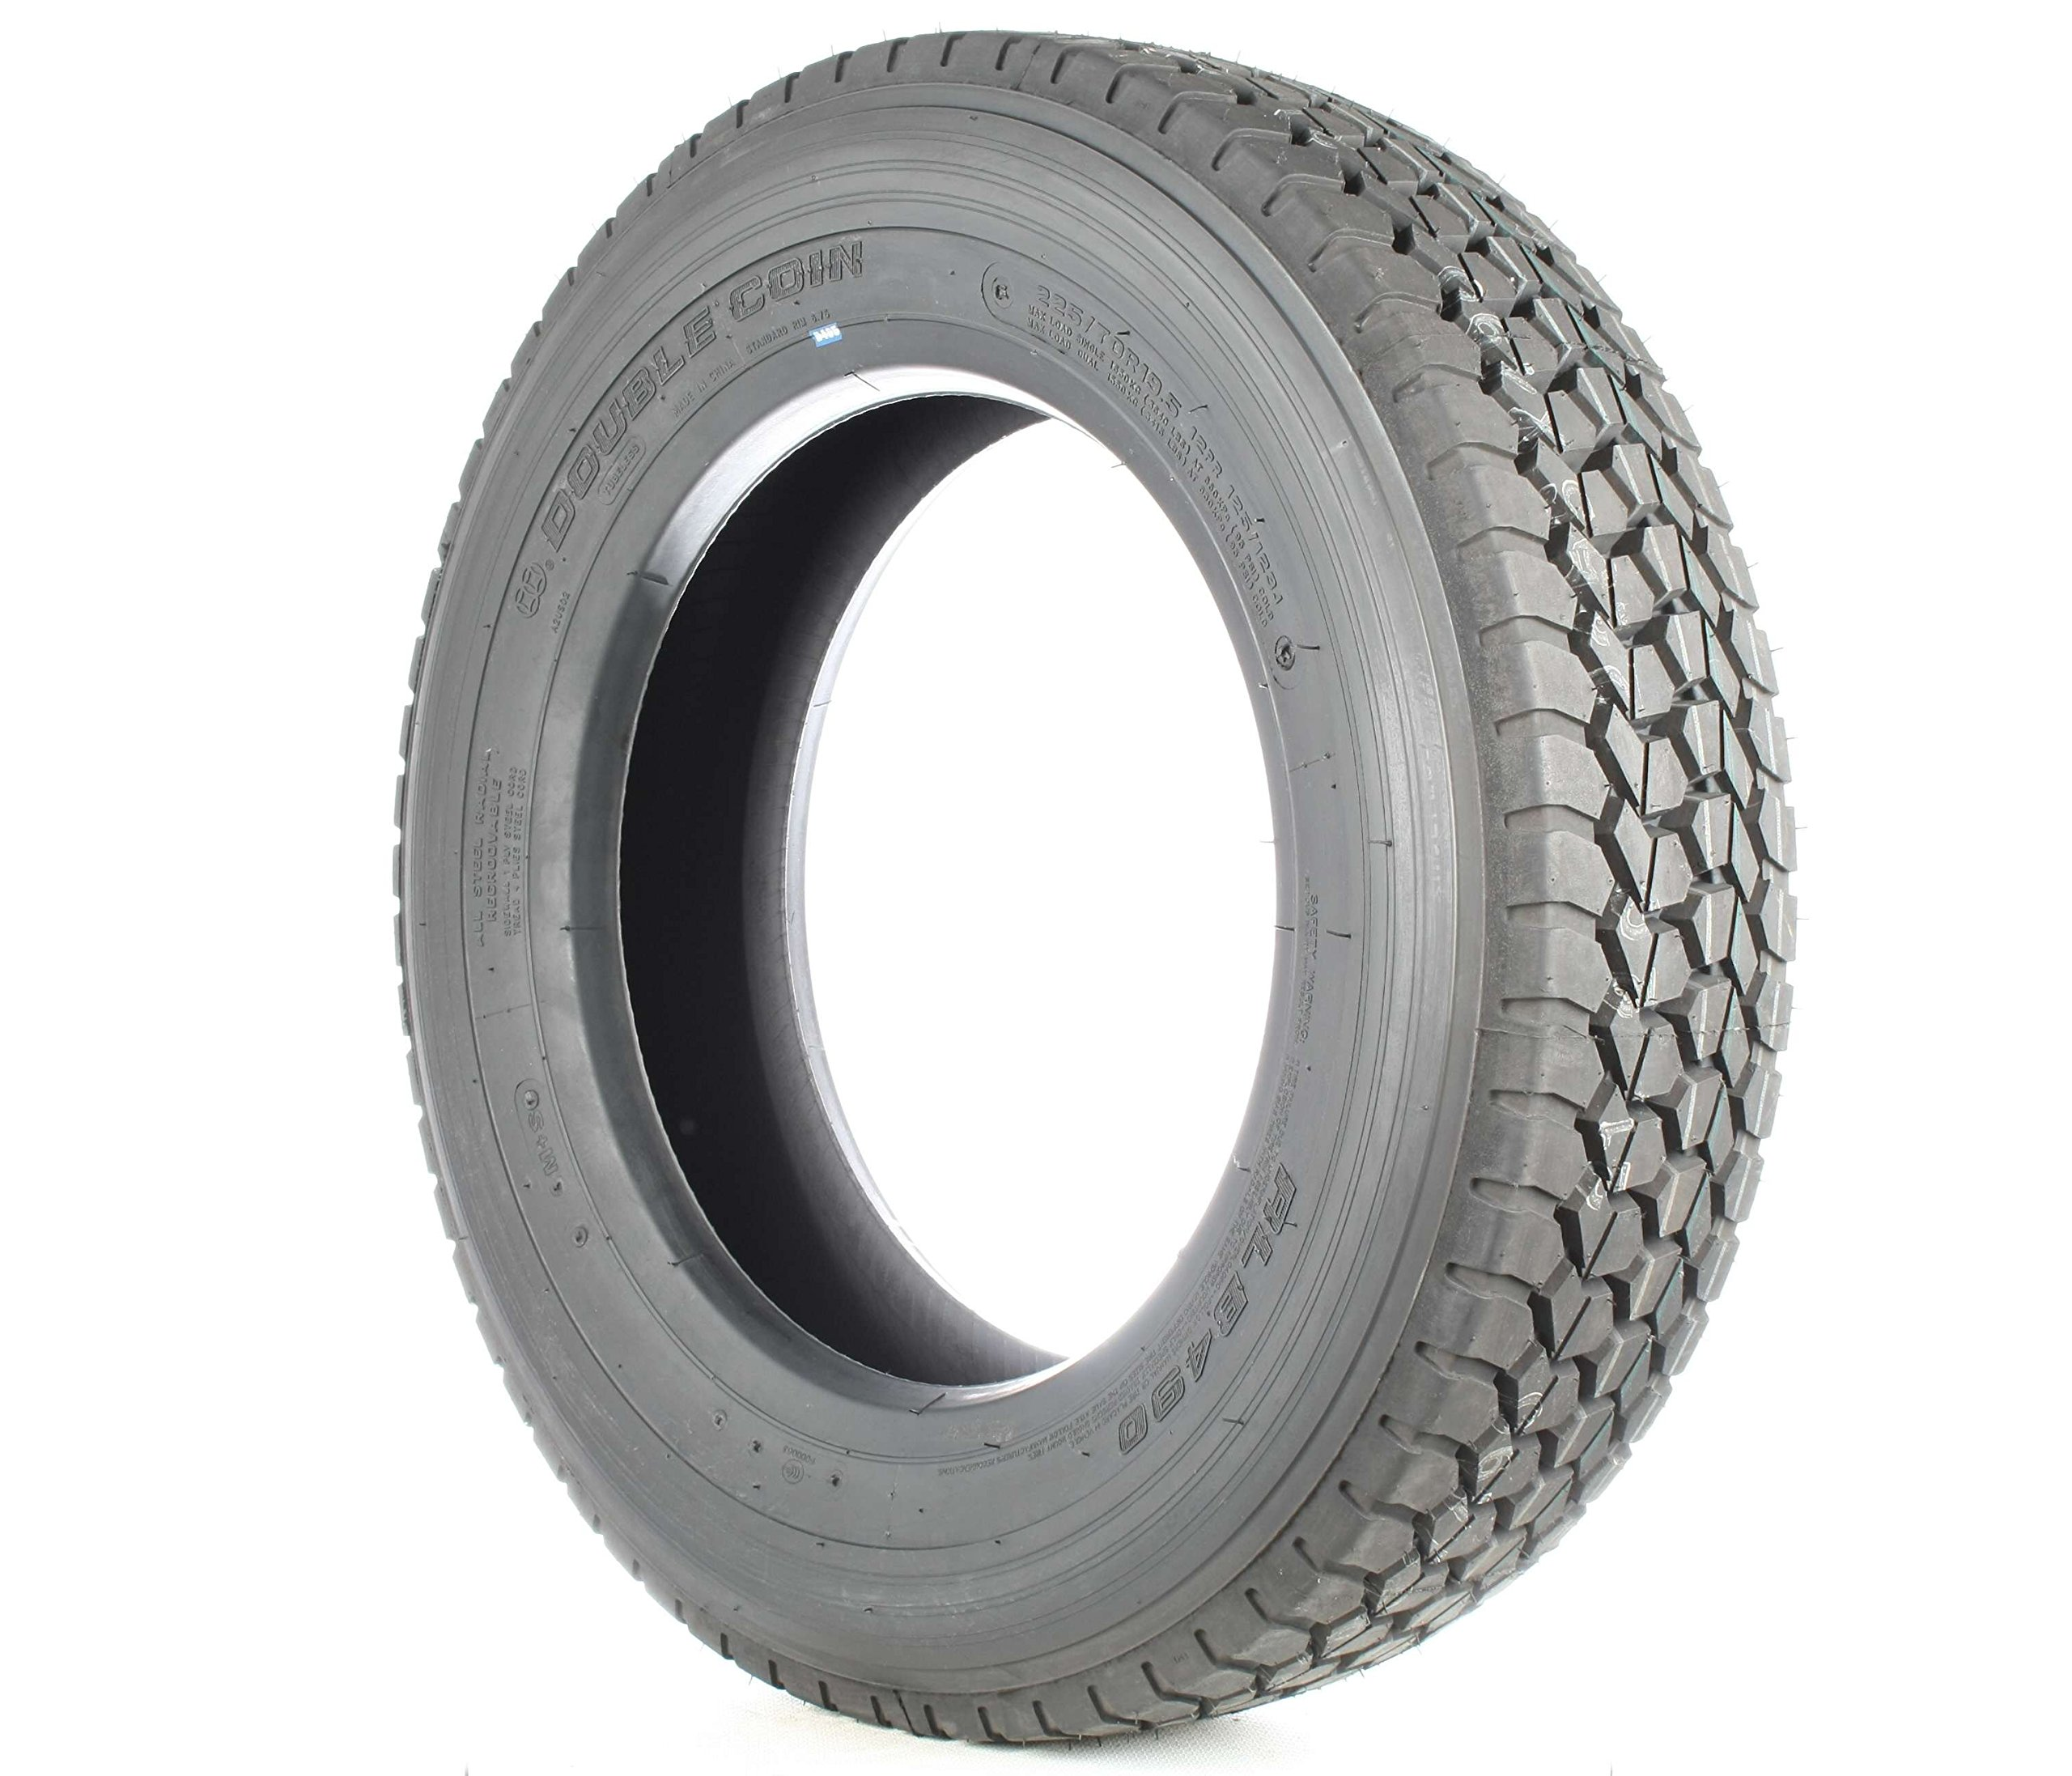 Double Coin RLB490 Low Profile Drive-Position Multi-Use Commercial Radial Truck Tire - 225/70R19.5 12 ply by Double Coin (Image #2)